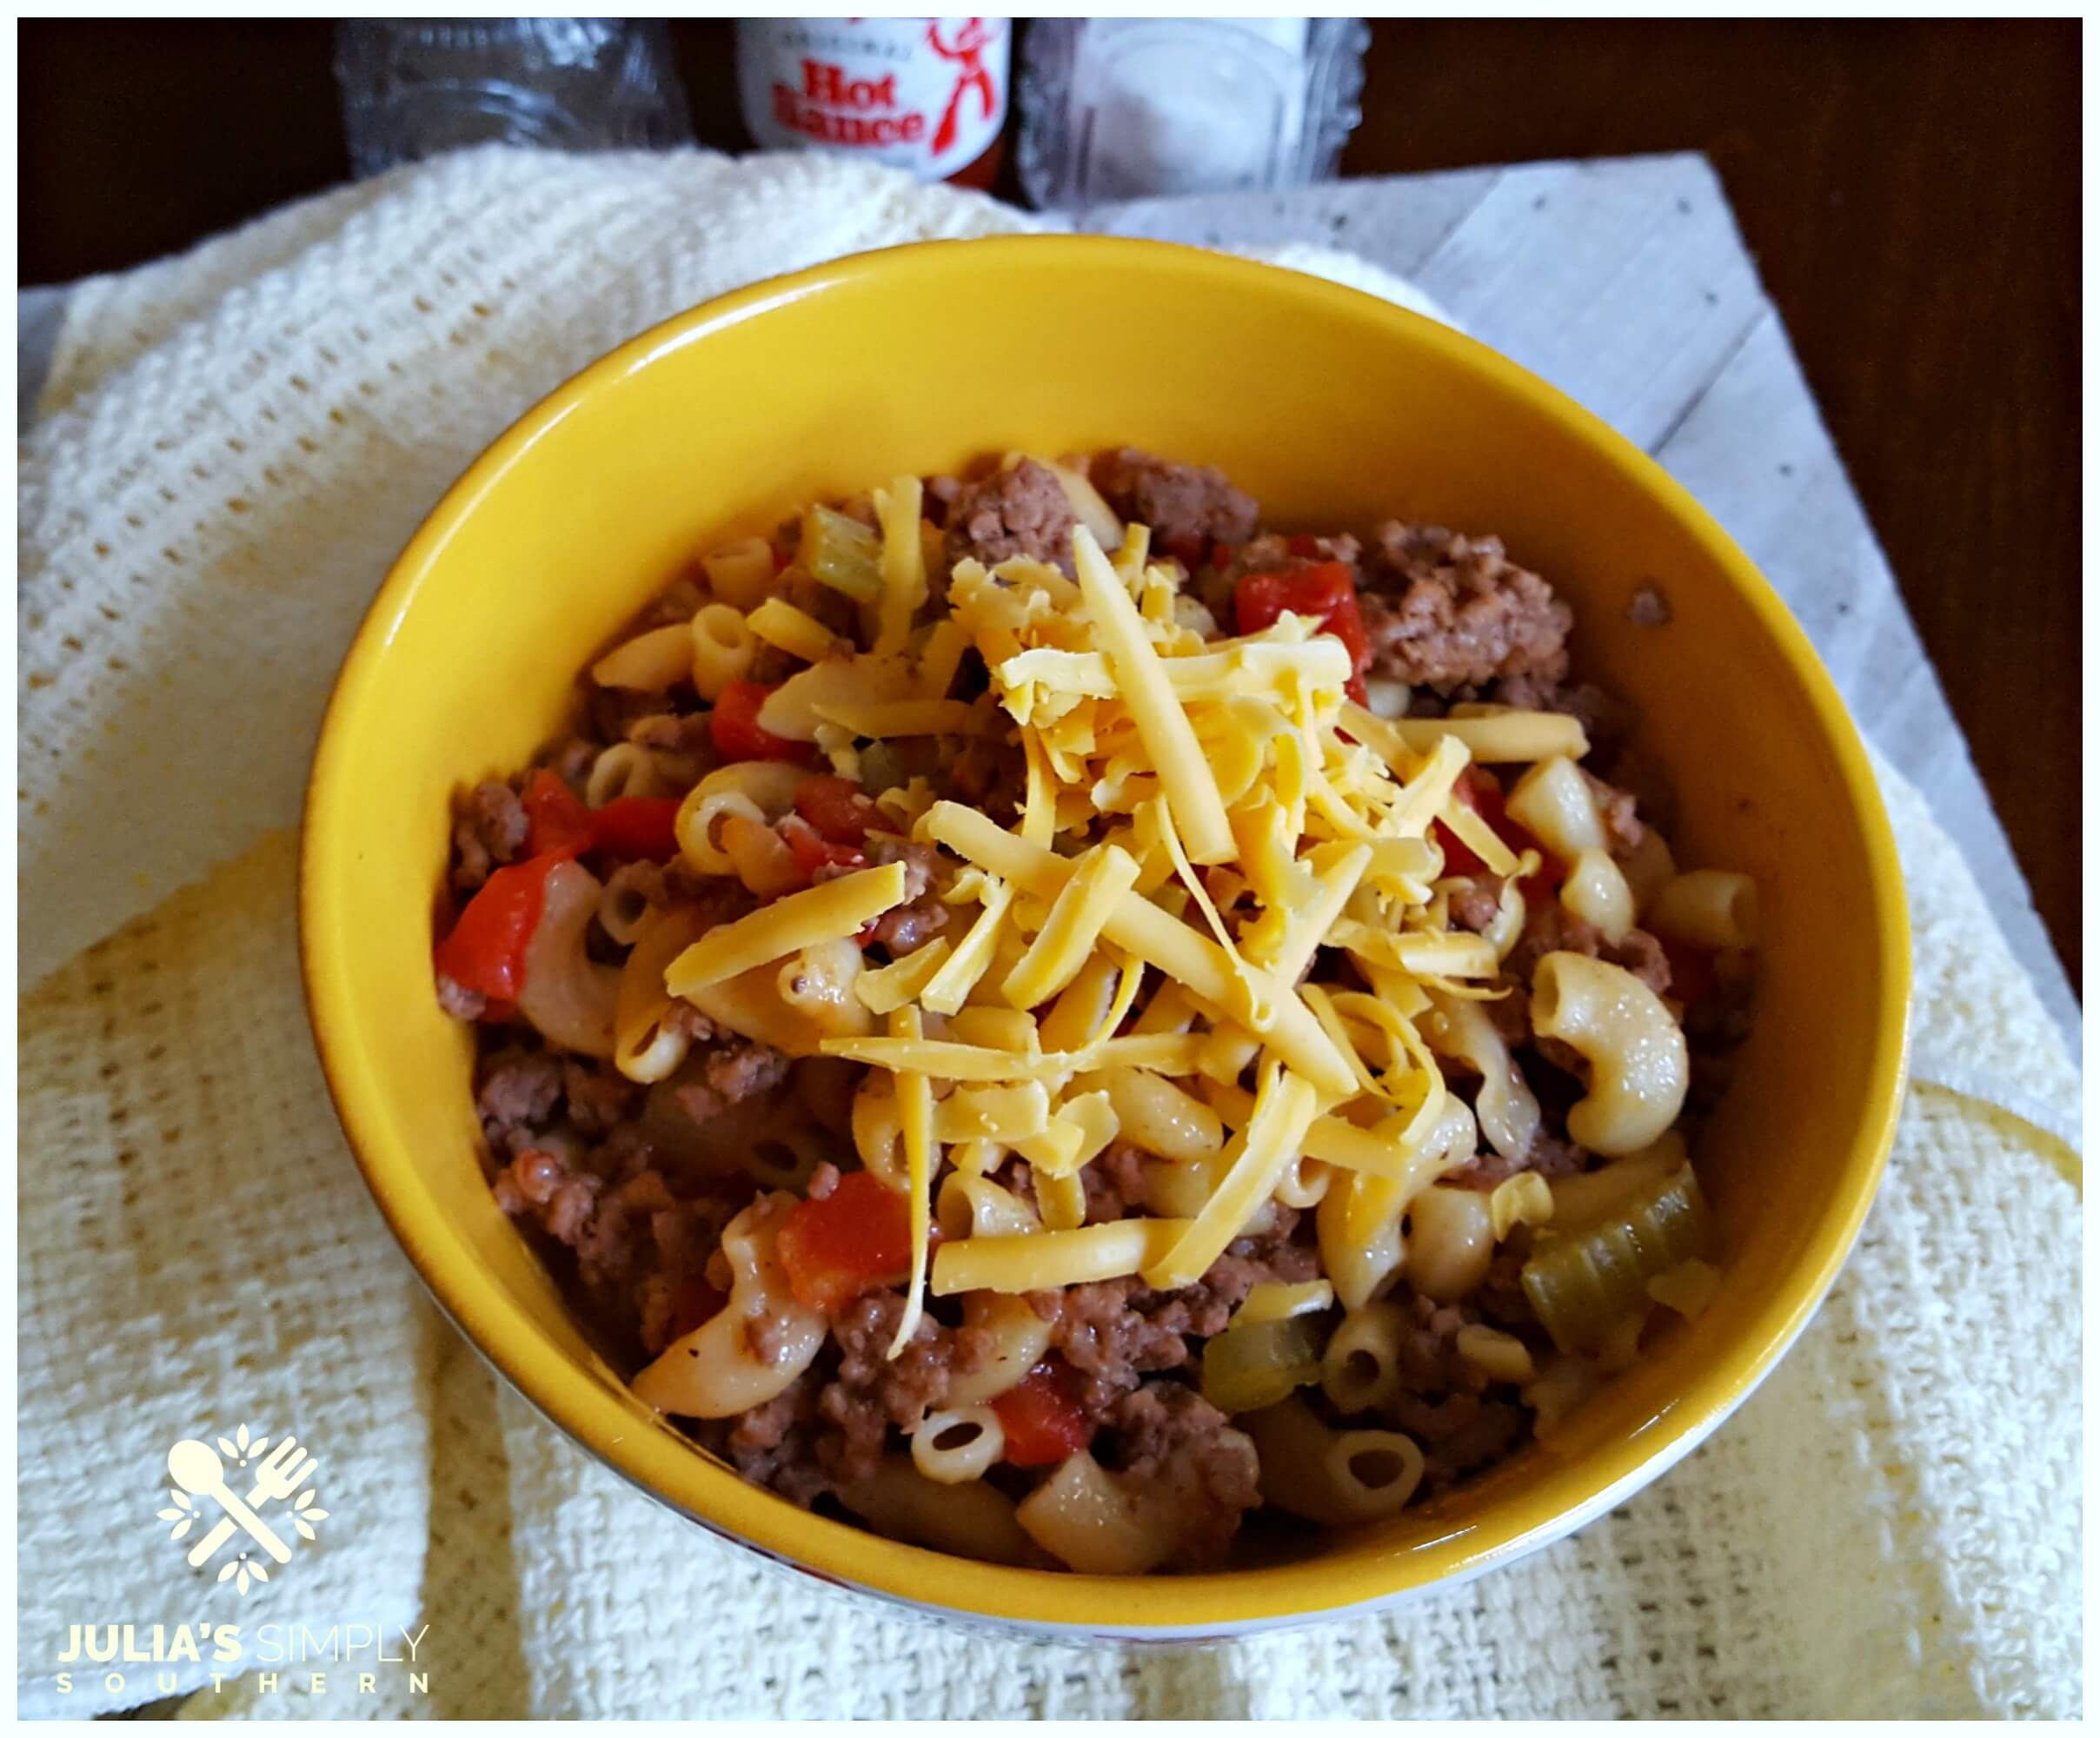 Basic Goulash Recipe - Southern Style - American Chopped Suey